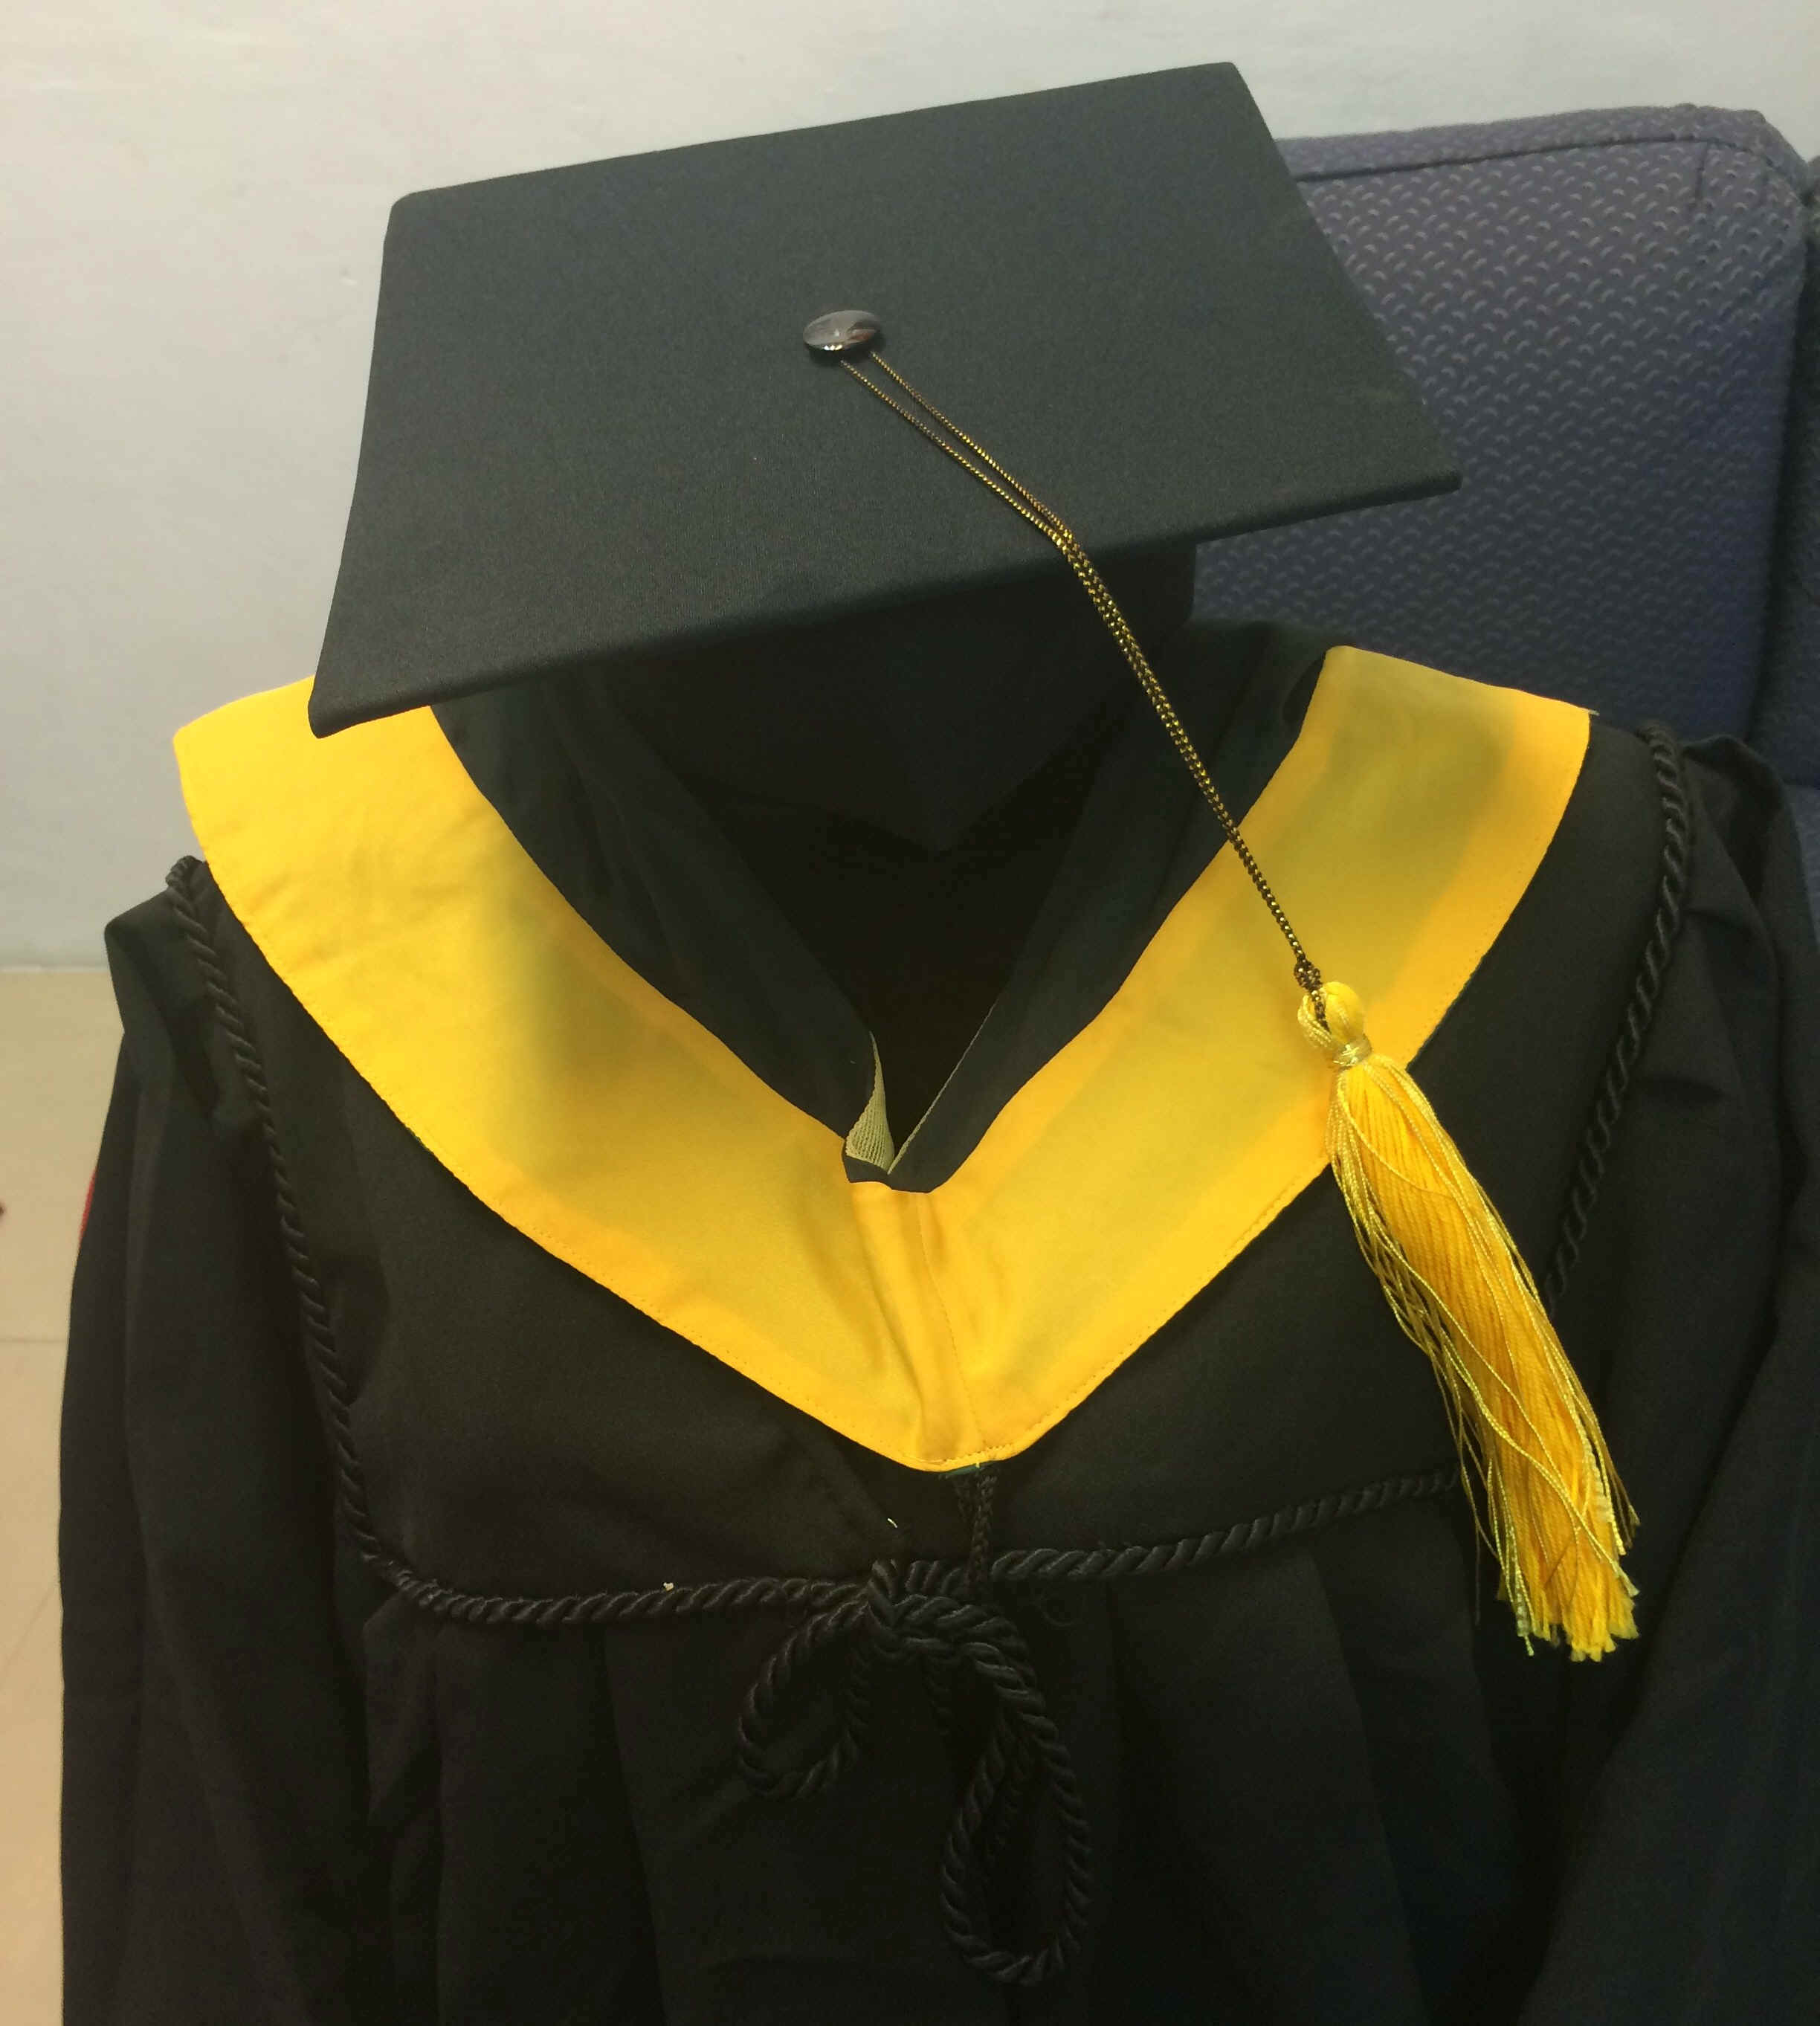 Graduation Gowns Toga rental or sale Filmo SG 98365486